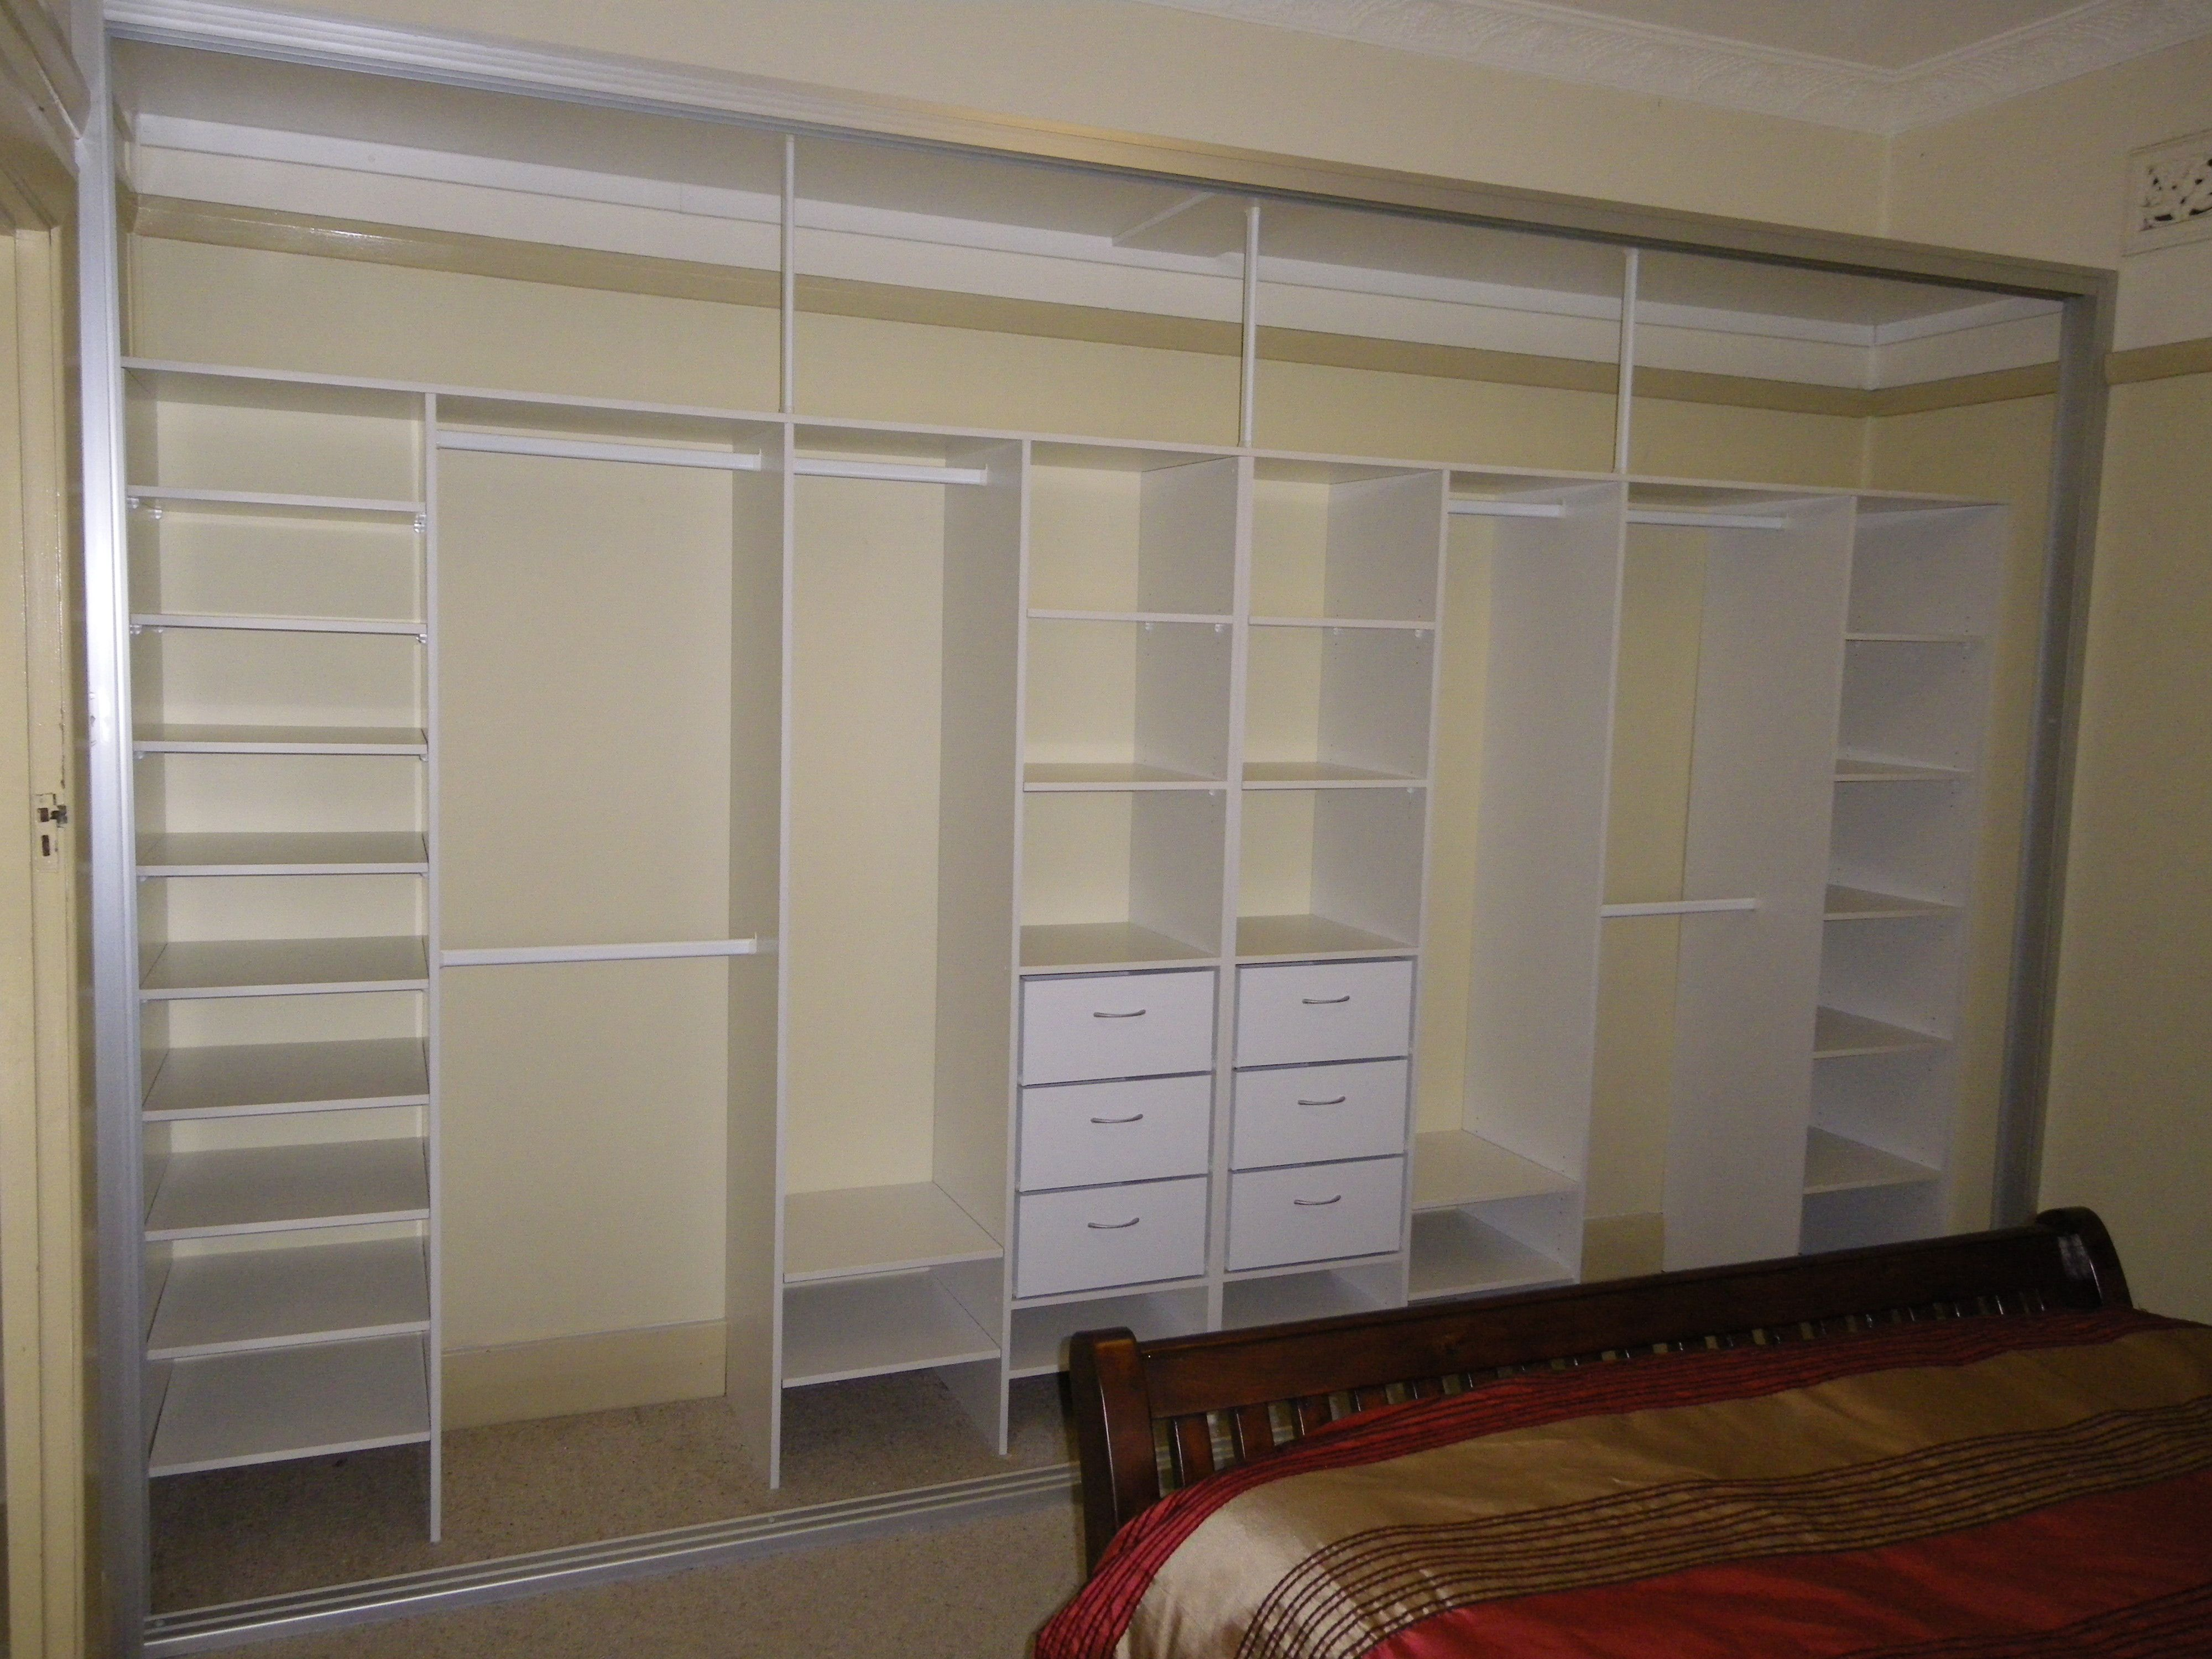 Stunning open cabinetry system for clothes organizer in modern walk in closet ideas with built - Built in closet systems ideas ...